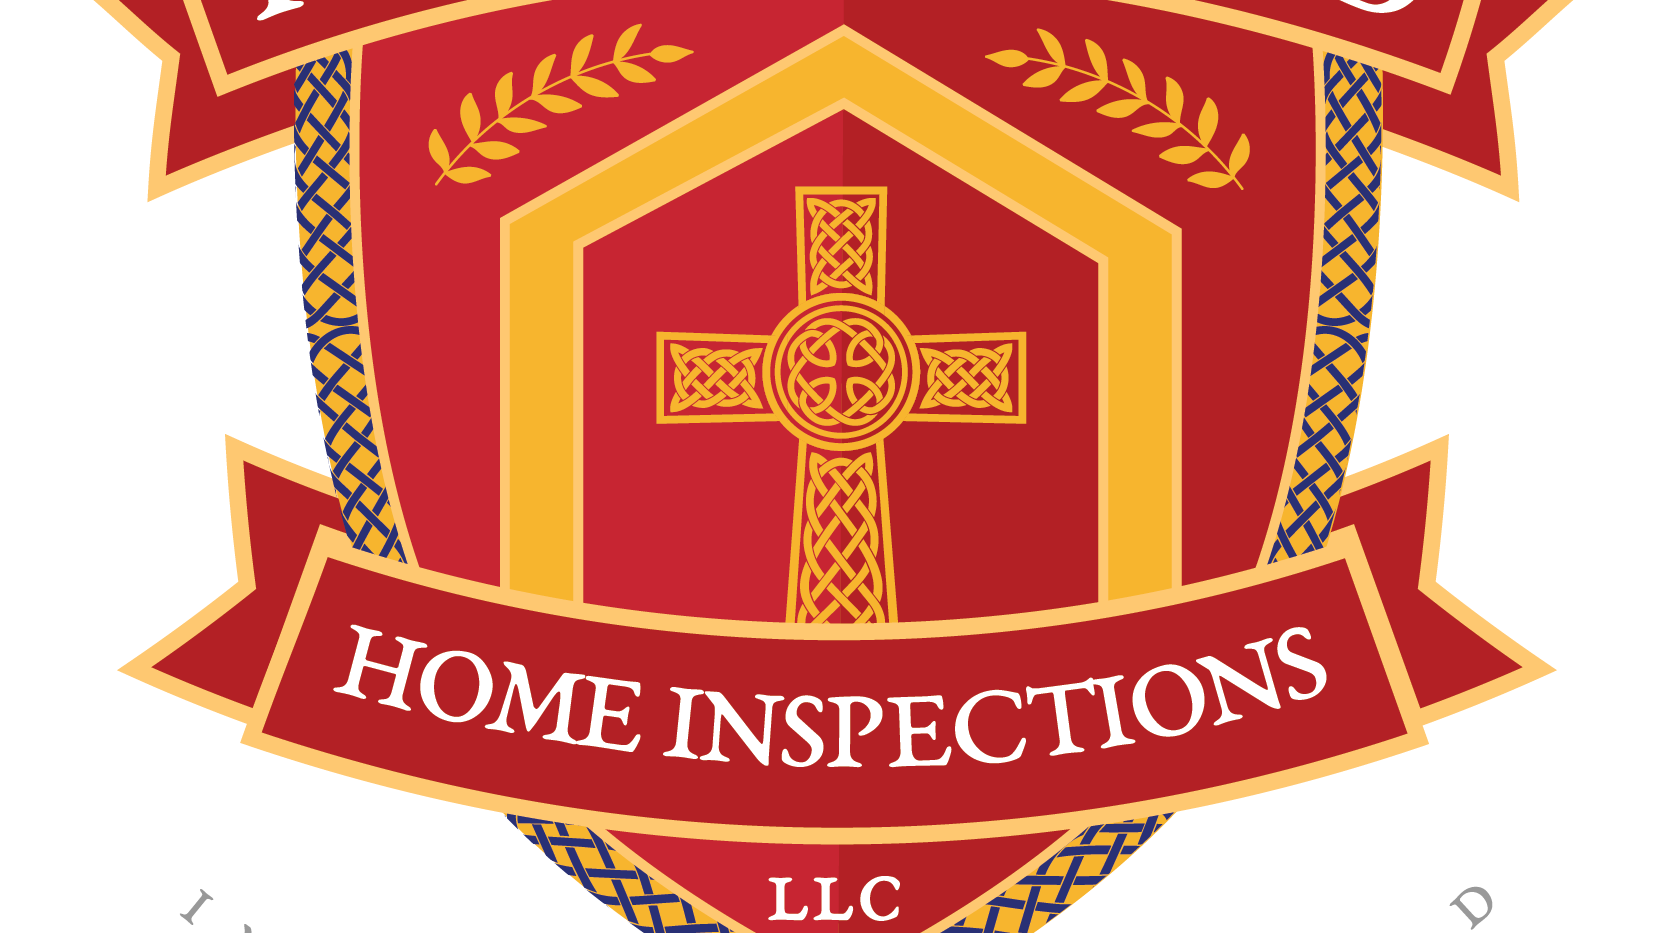 Promise Land Home Inspections